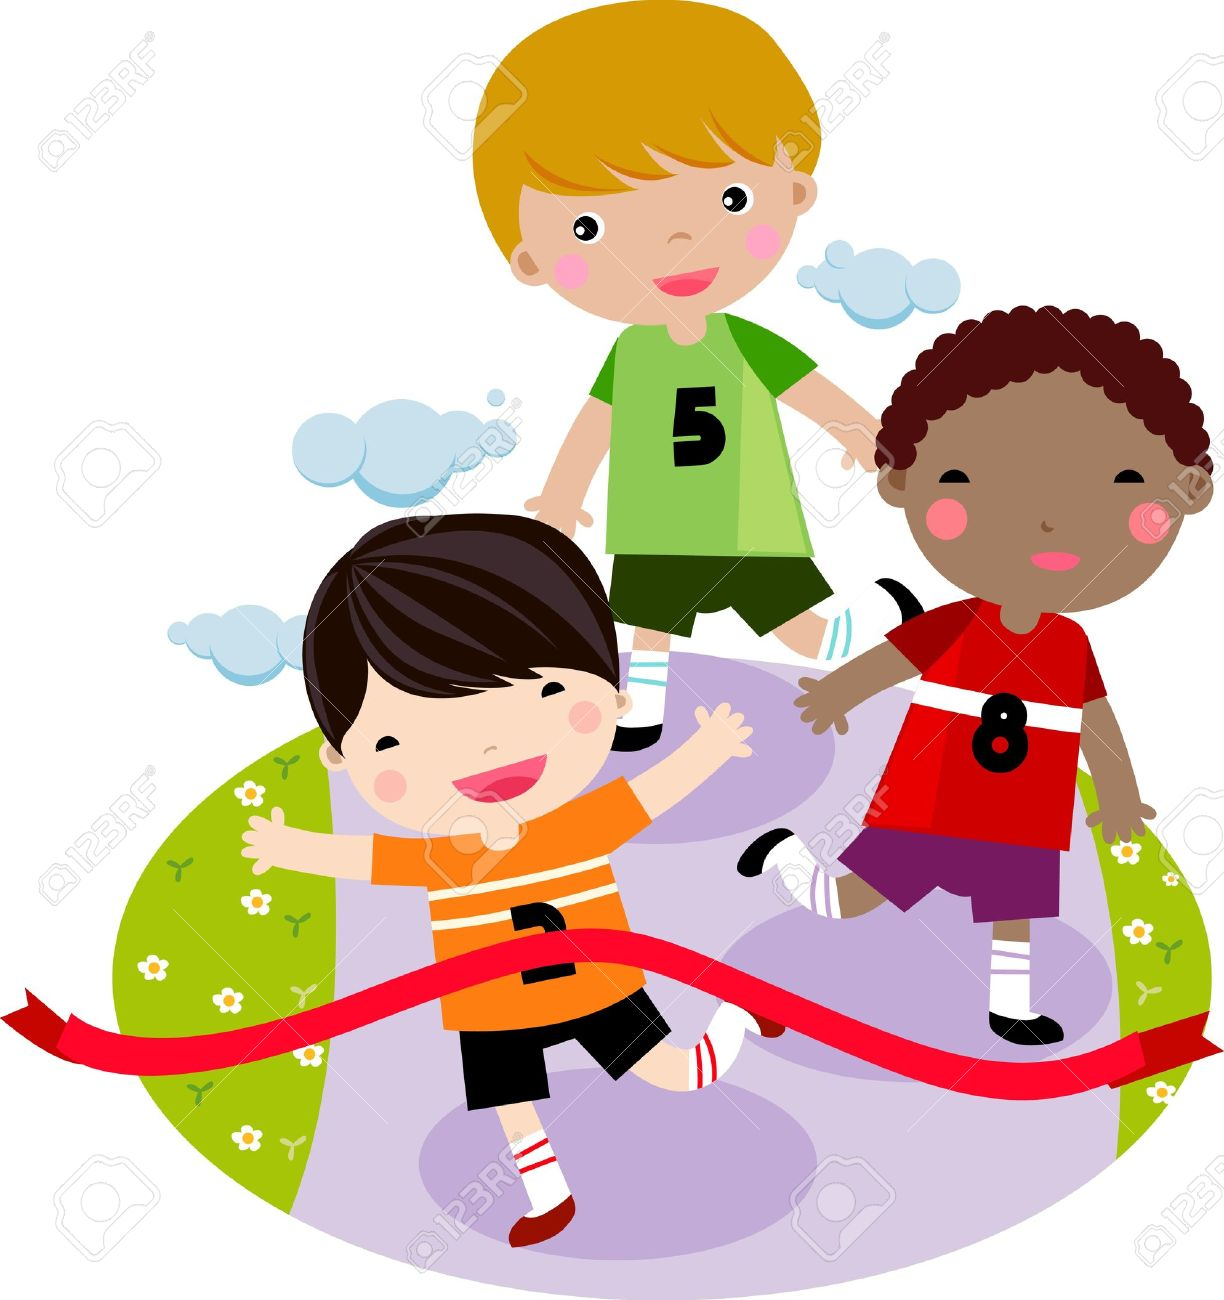 Child running clipart 7 » Clipart Station.